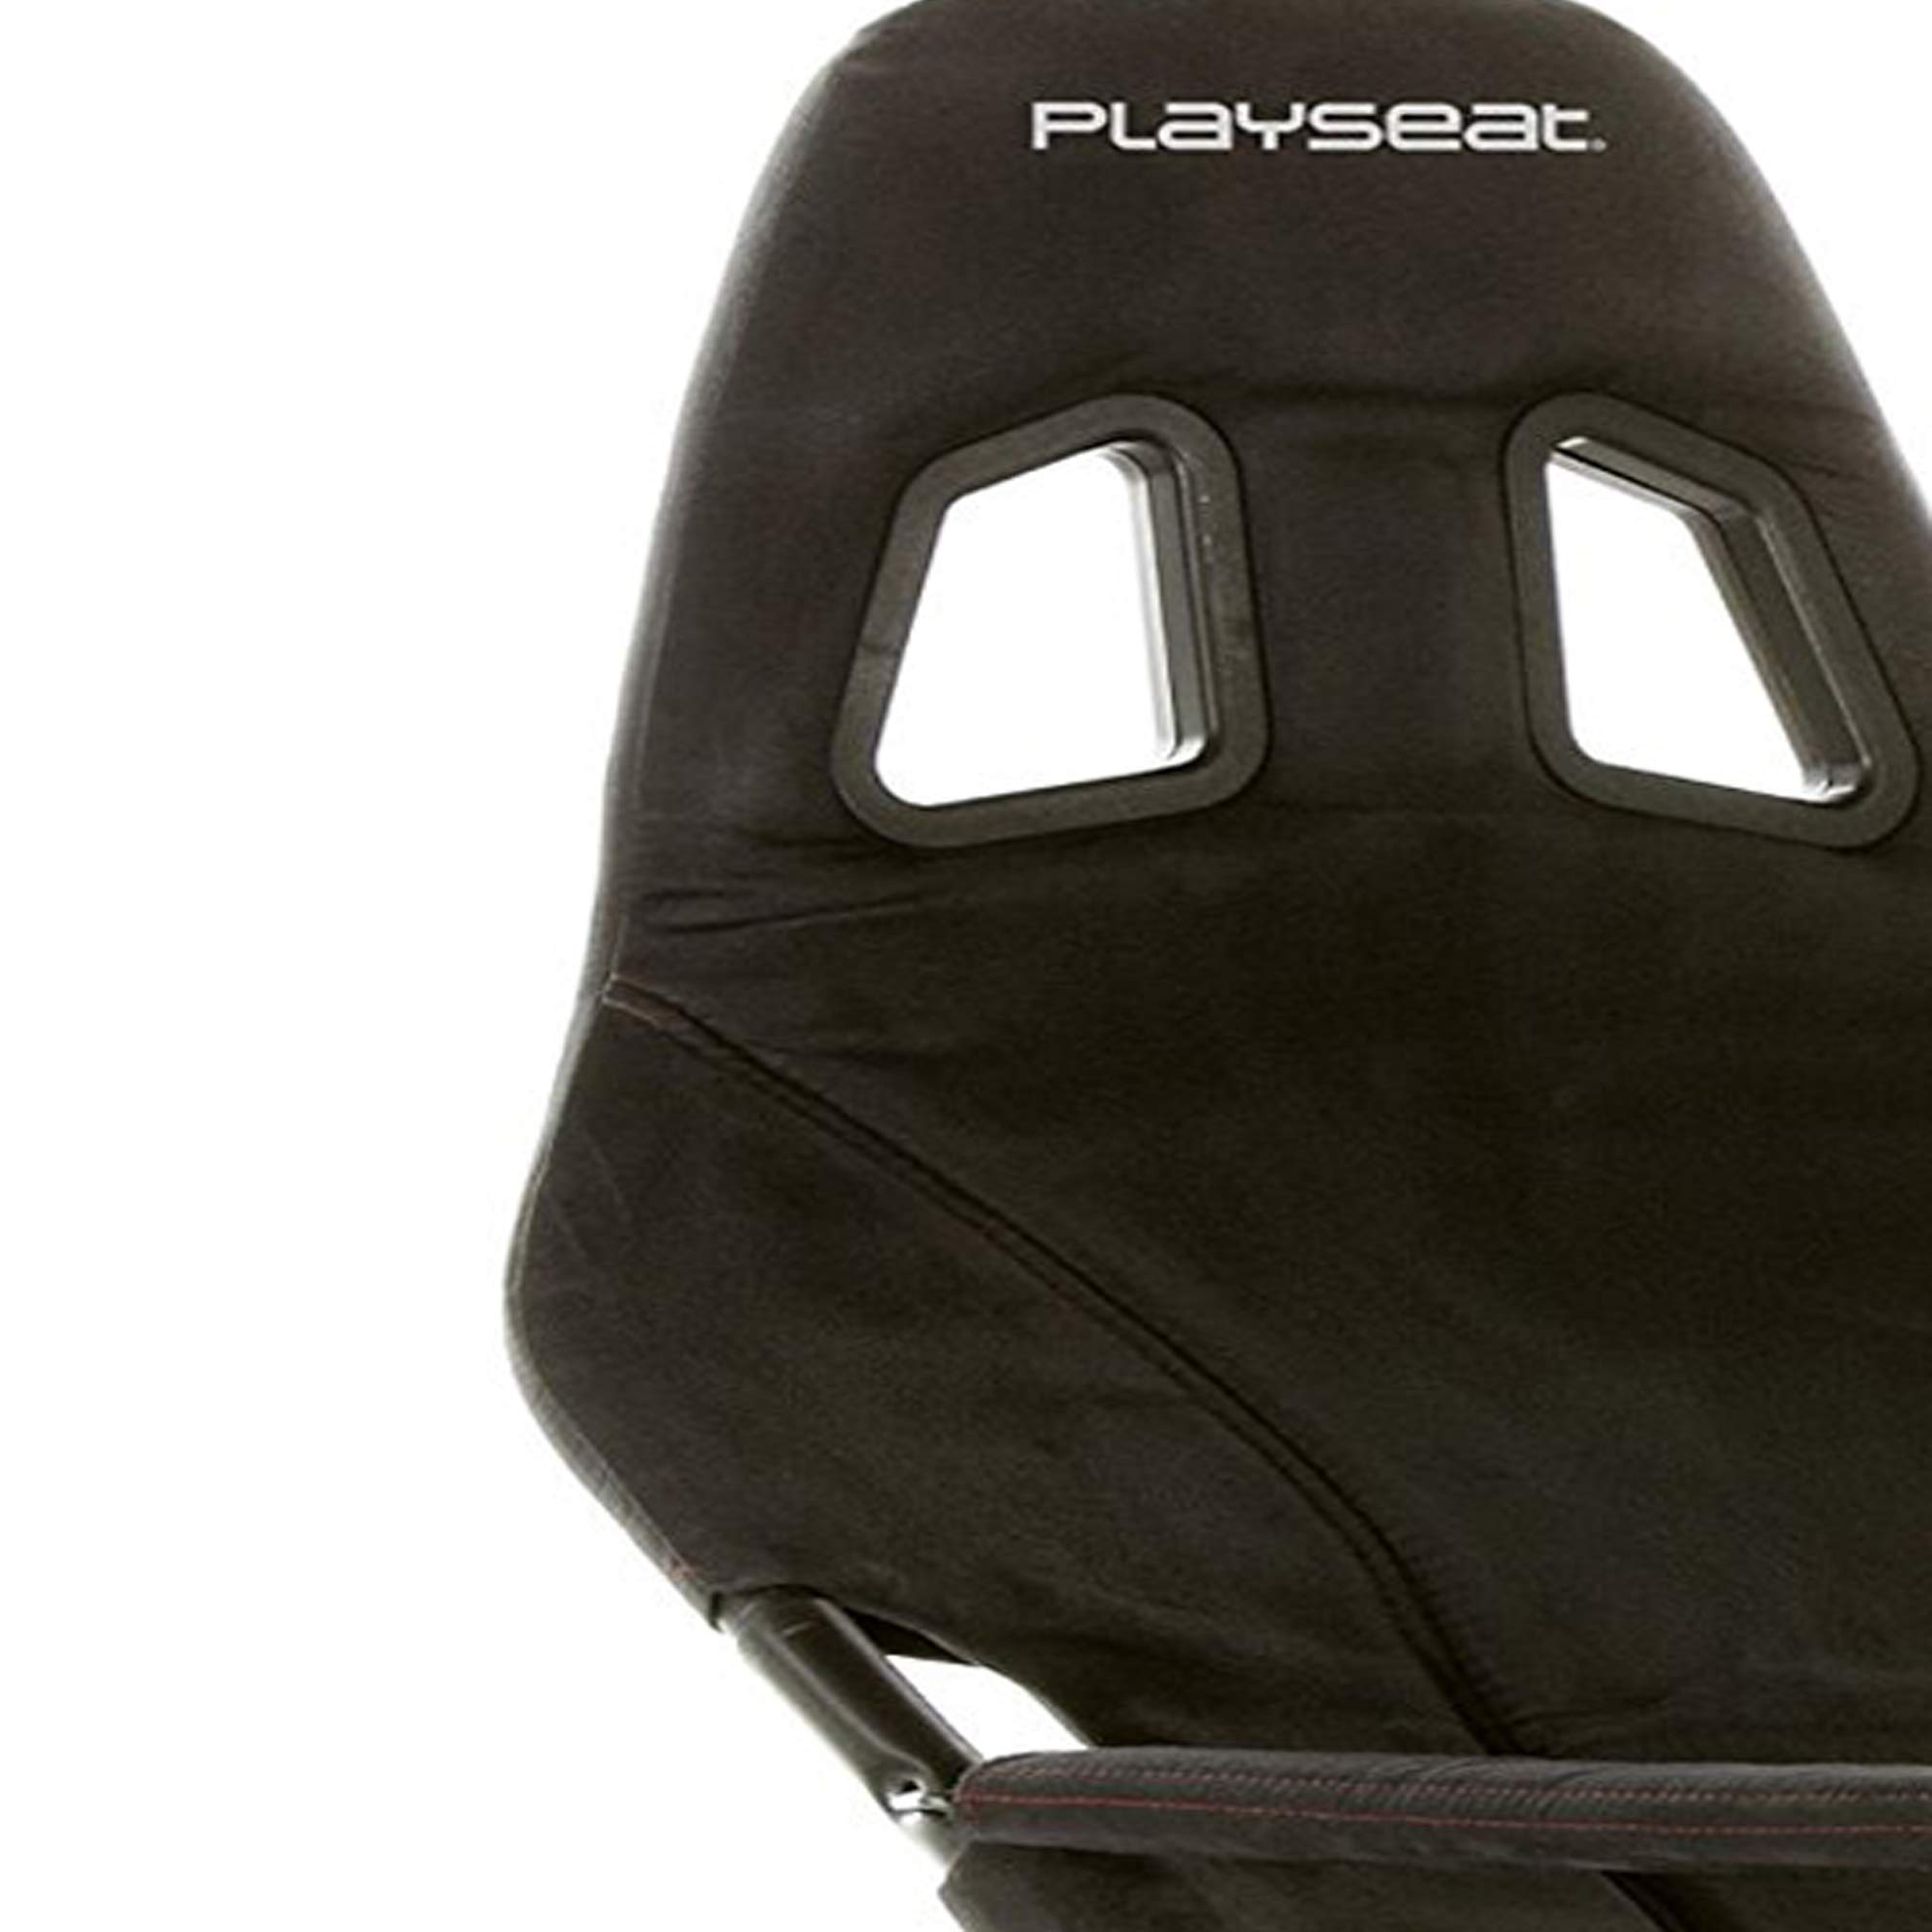 Playseat Challenge by Playseat (Image #5)